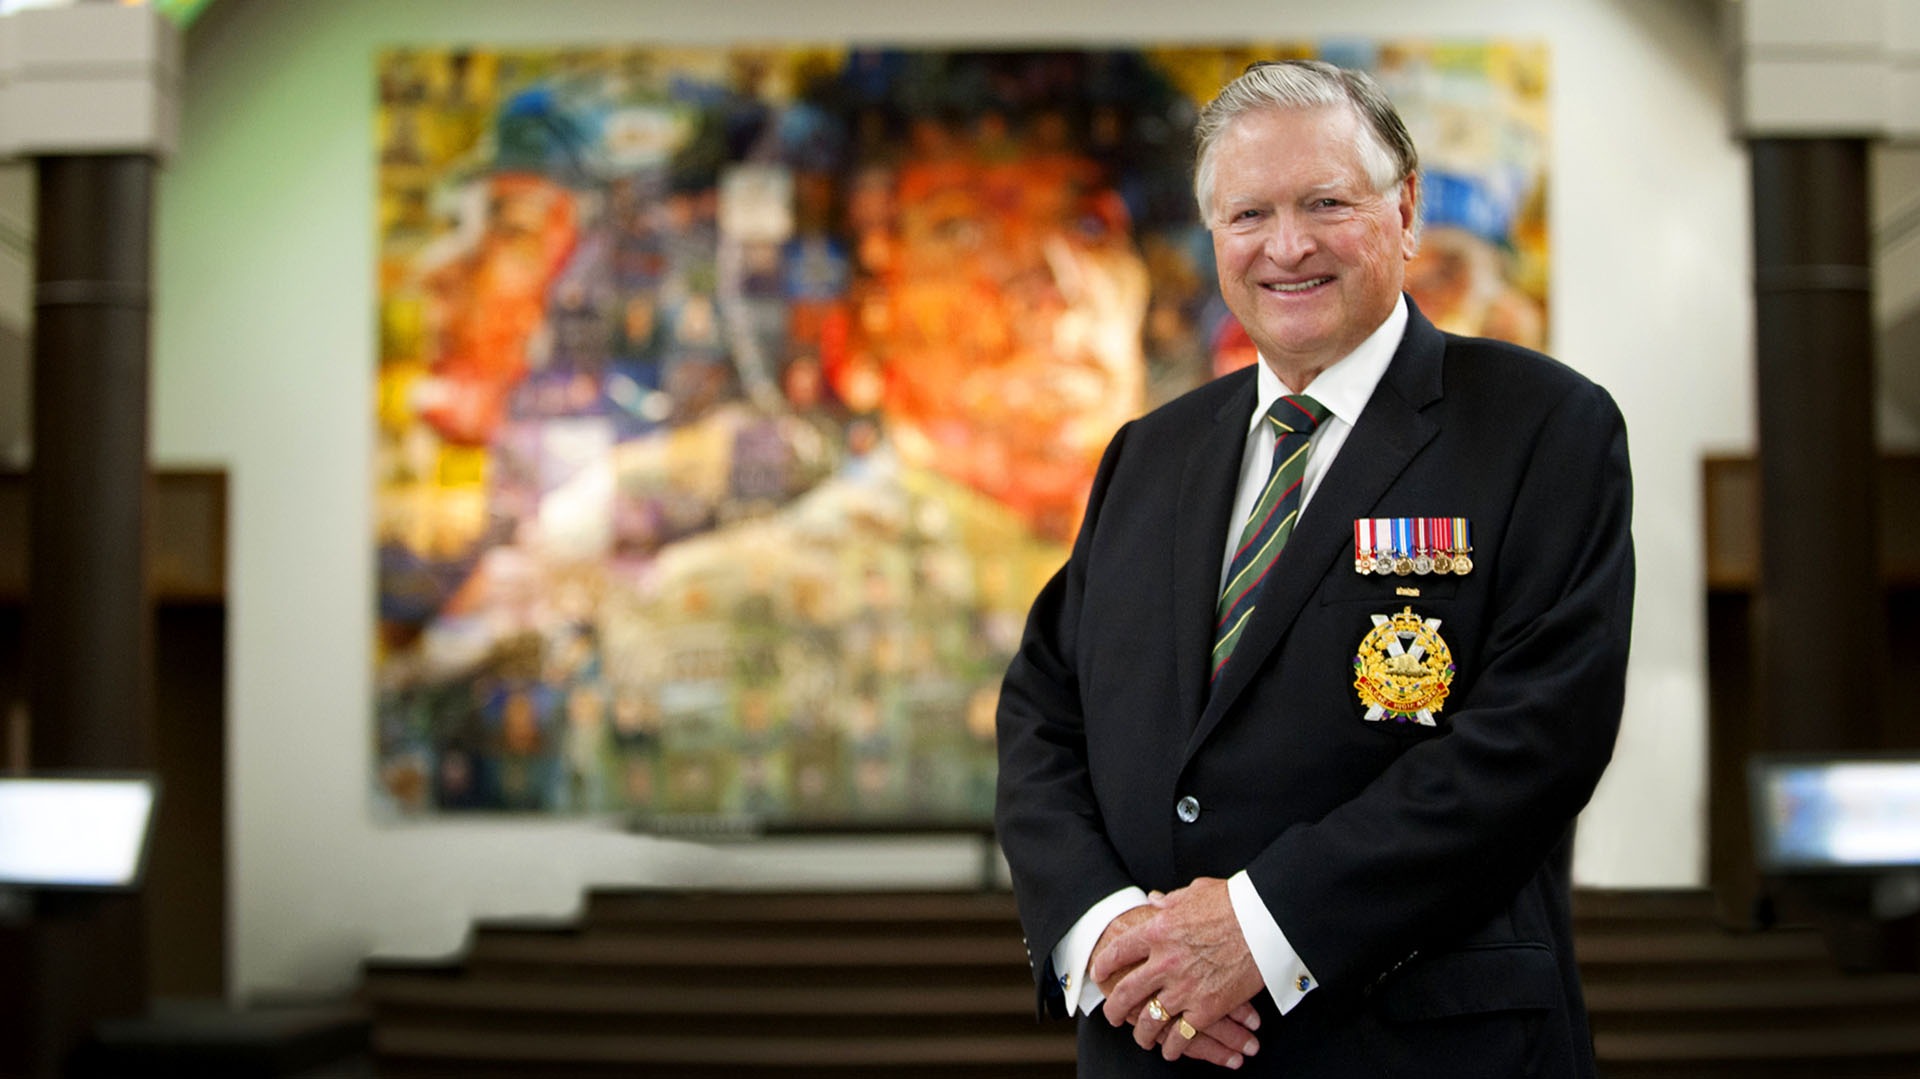 Alberta Order of Excellence member Fred Mannix